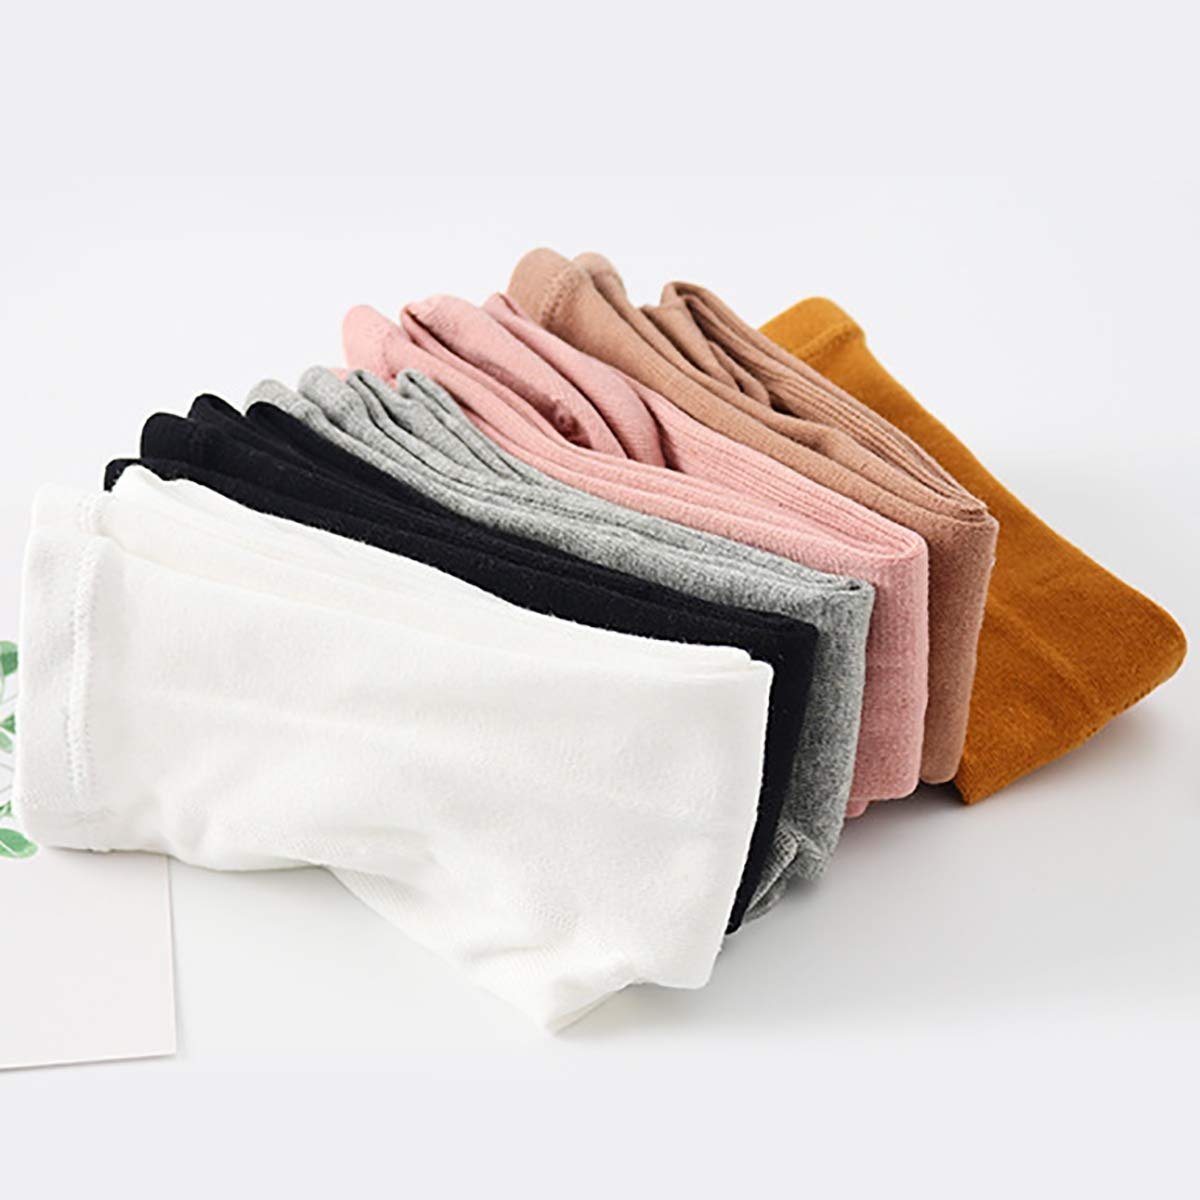 Looching Pack of 4//5 Cotton Cable Knit Tights Legging Stocking Pants Pantyhose for 2-10T Baby Toddler Little Girls